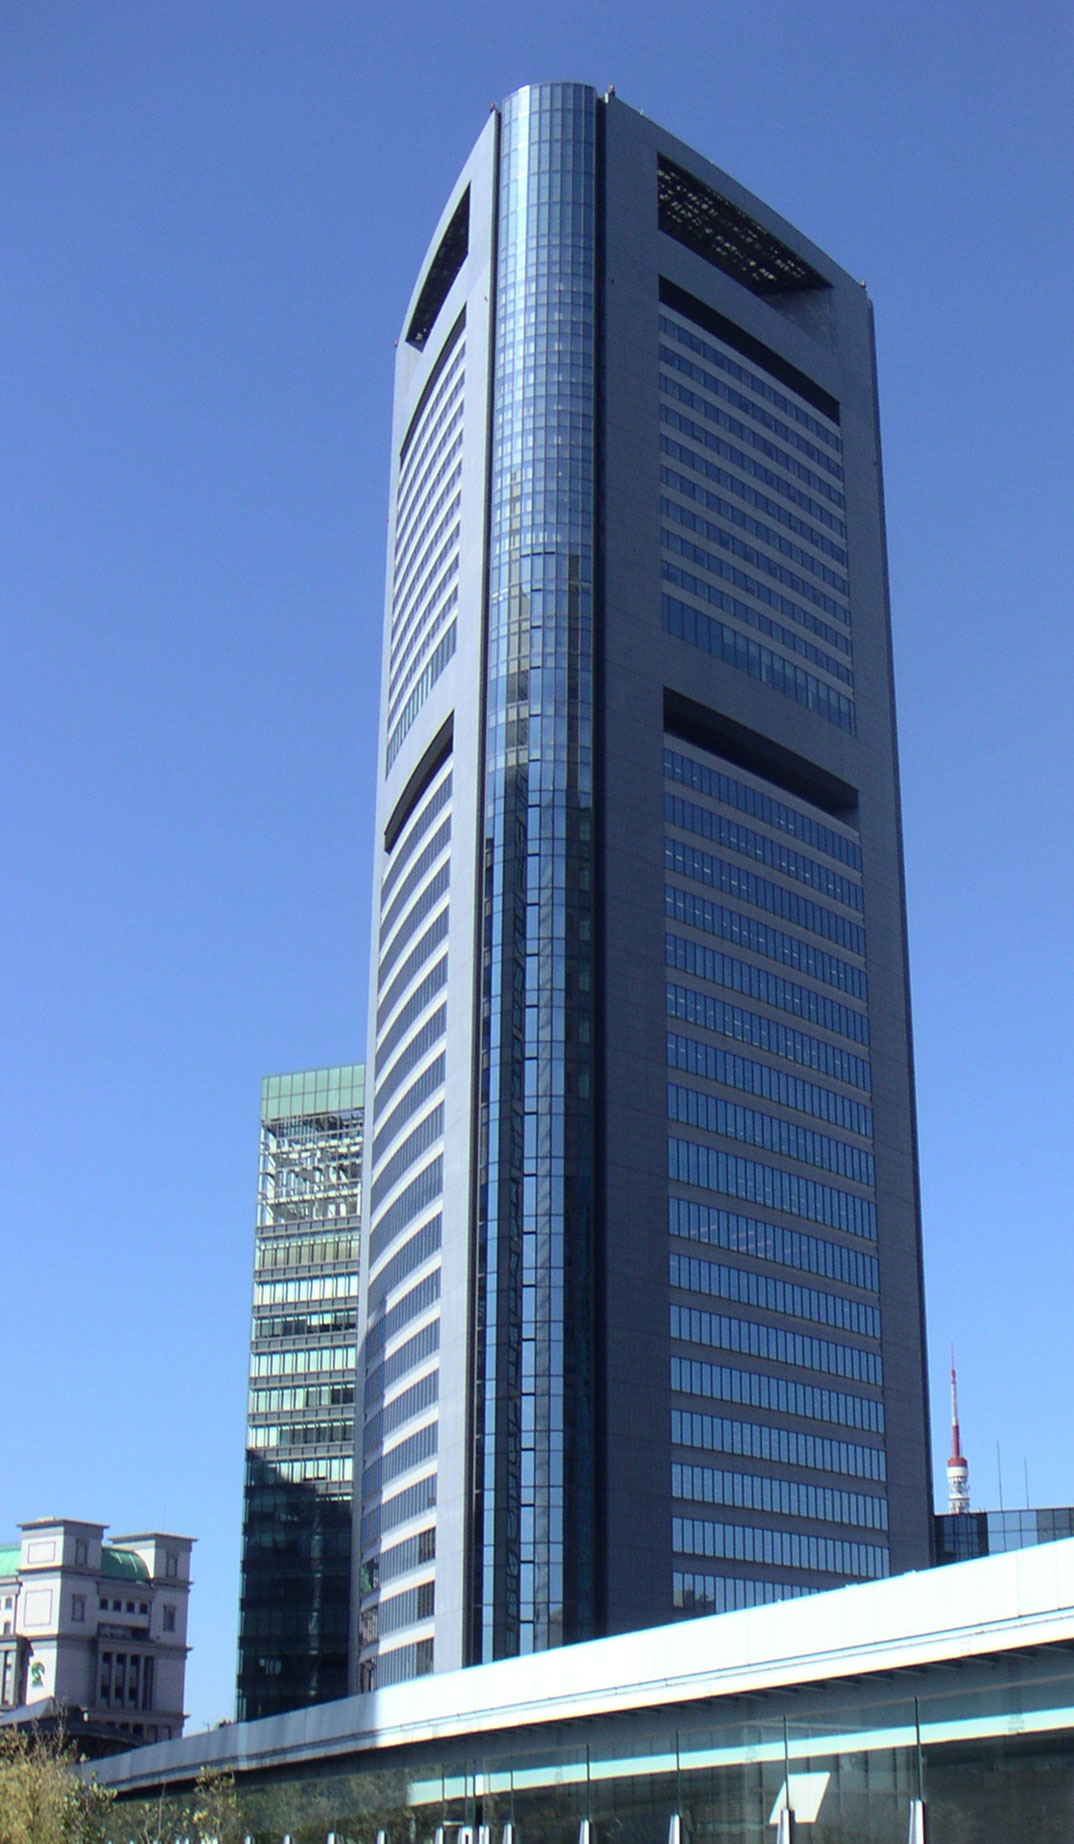 Shiodome_Media_Tower